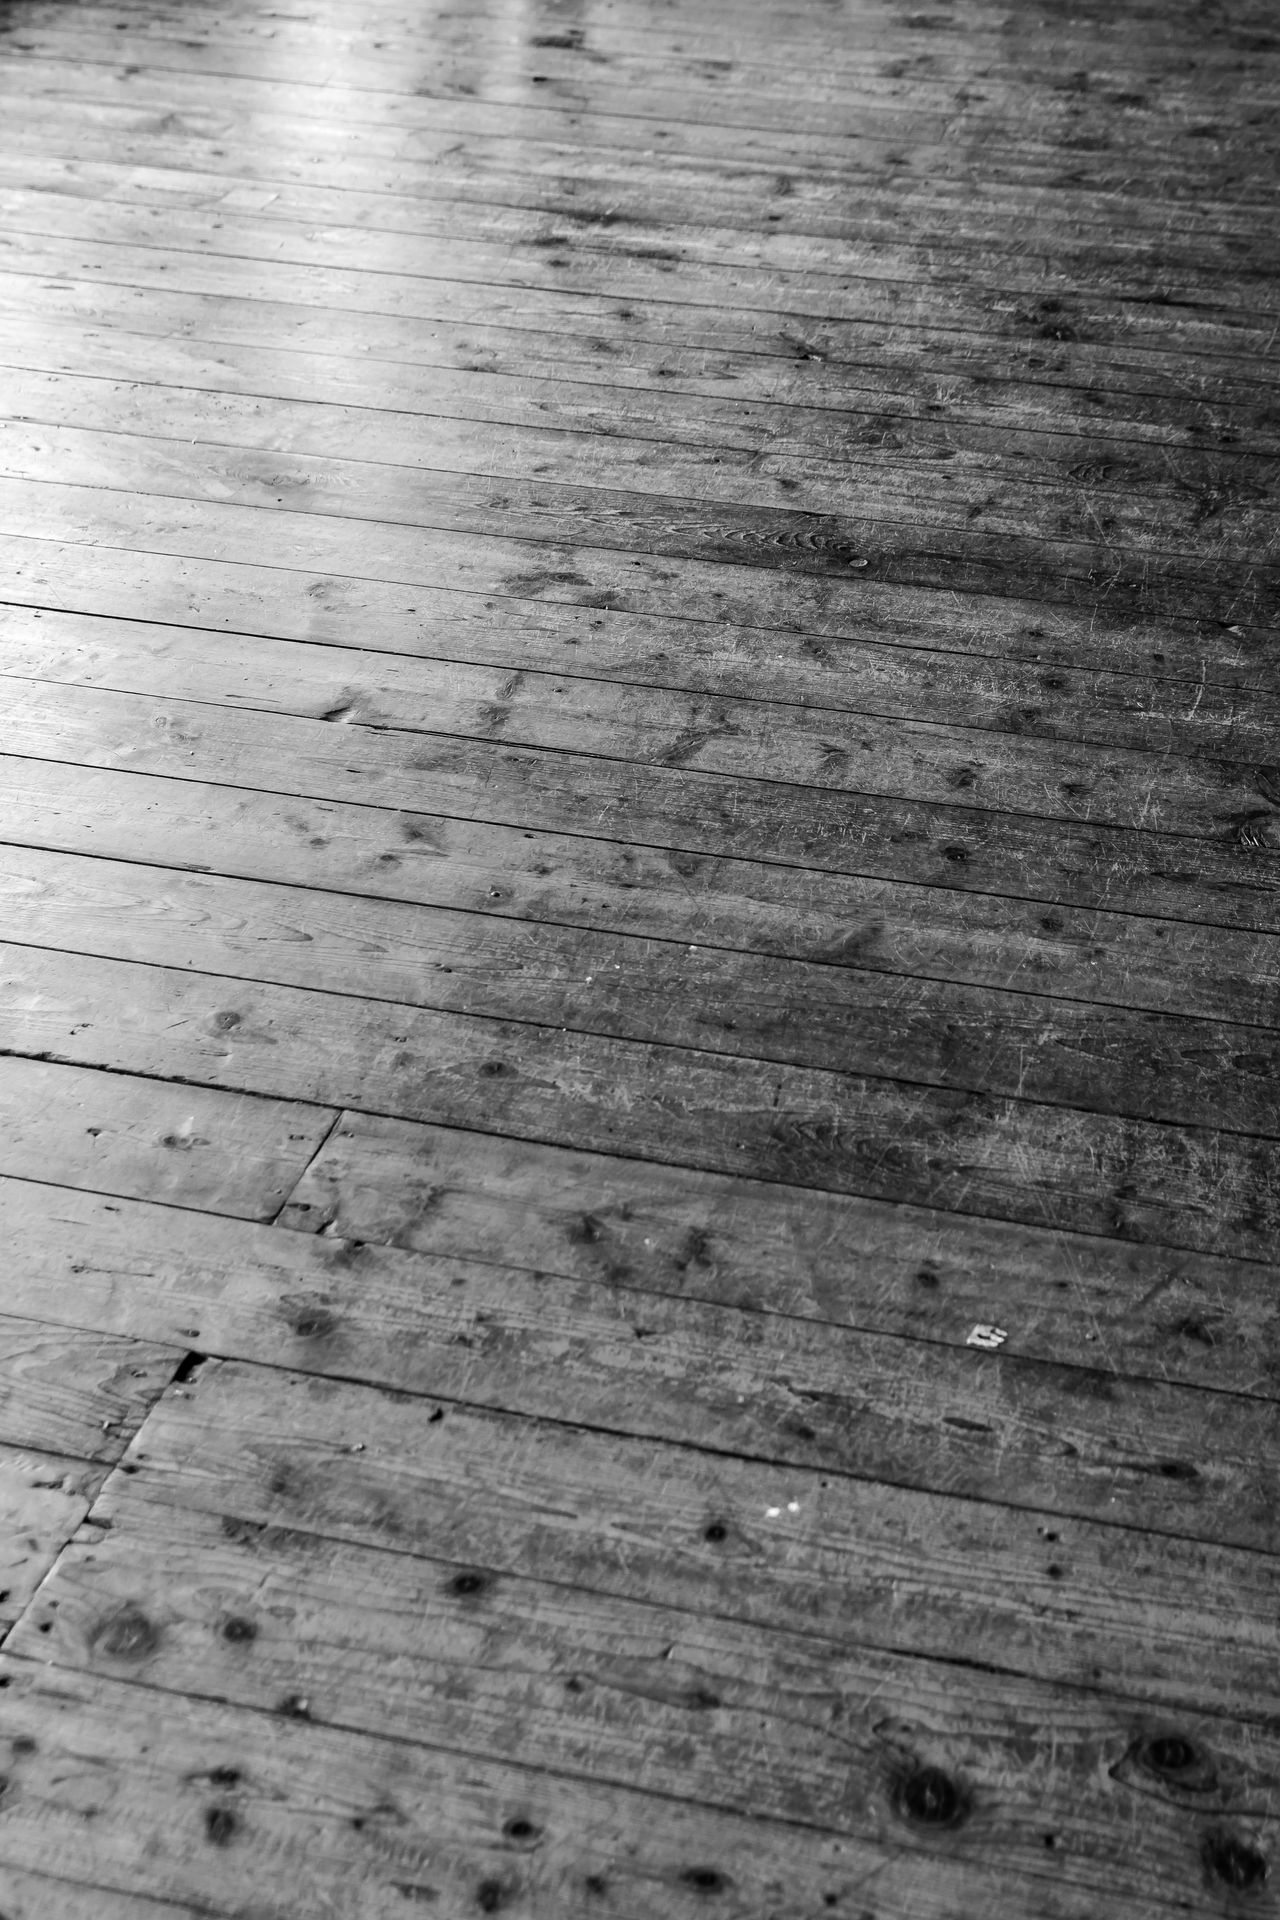 Abstract Backgrounds Black And White Close-up Day Flooring Full Frame Hardwood Hardwood Floor Indoors  Monochrome Nature No People Old-fashioned Pattern Plank Table Textured  Textured Effect Timber Wood - Material Wood Grain Wood Paneling